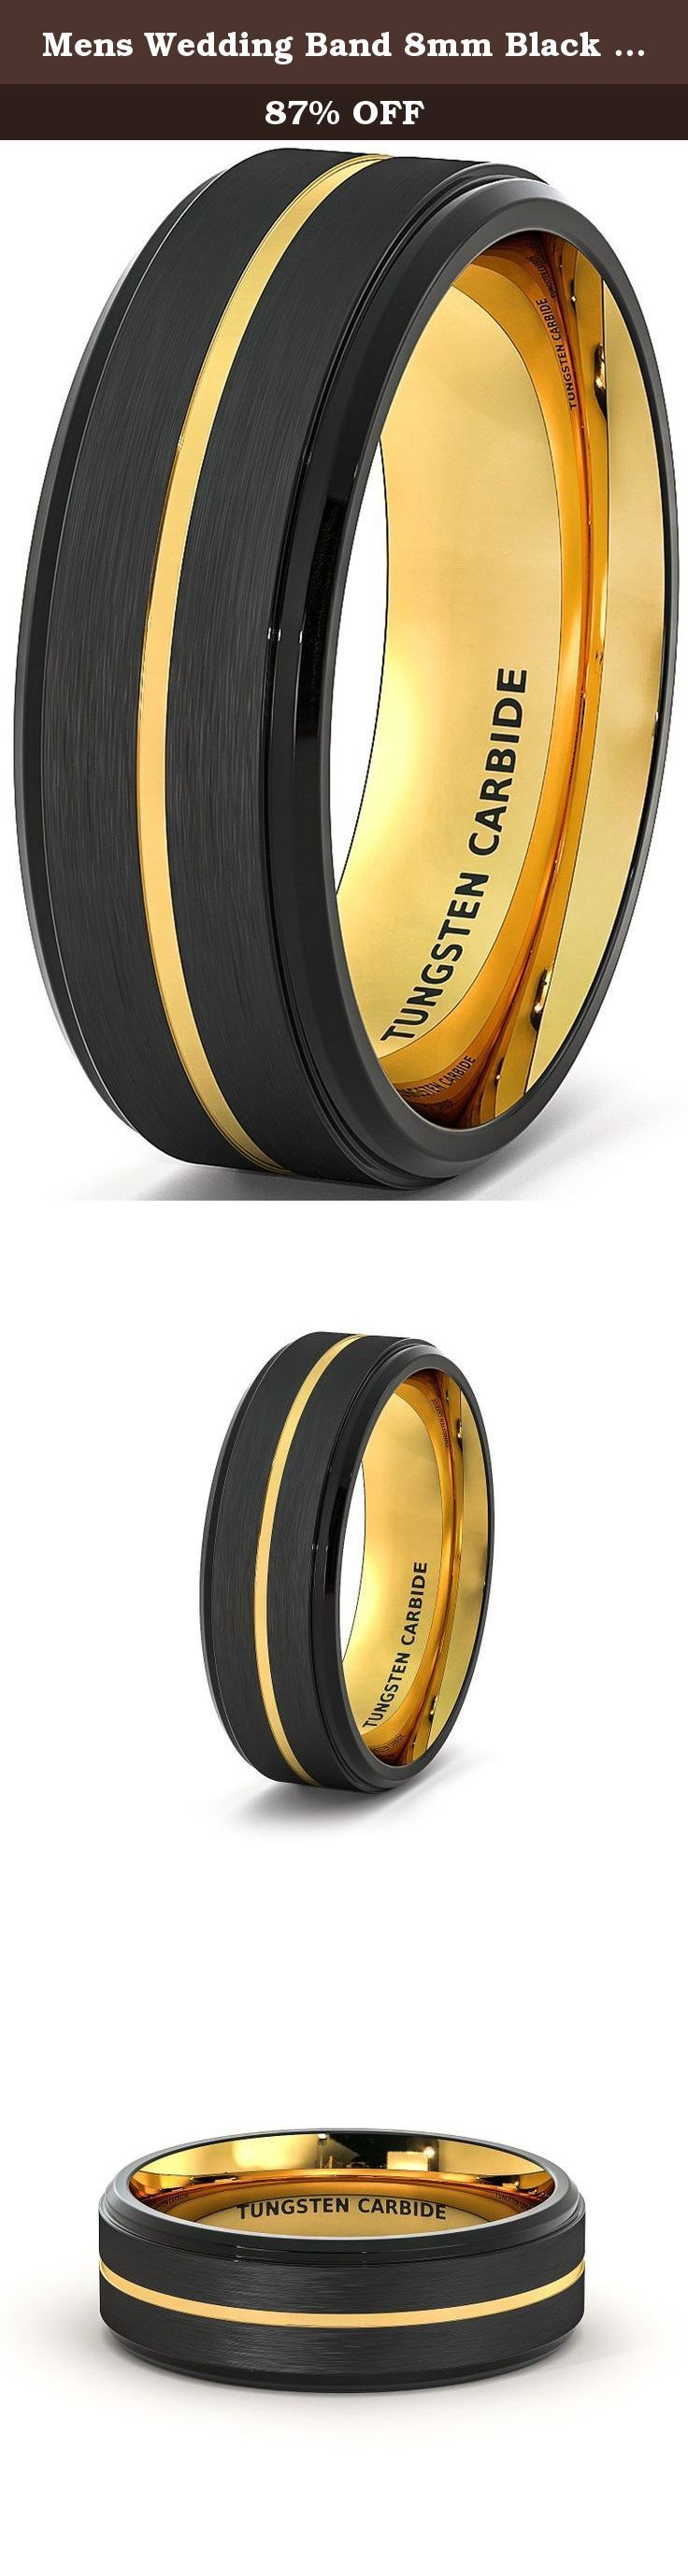 Mens Wedding Band 8mm Black Brushed Tungsten Ring Thin Gold Groove Step Edge Comfort Fit (7.5). Width: 8mm Fit: Comfort Fit Thickness: 2.3mm, Weight: Approximately 12-17g depend on sizes, Surface: Brushed Edge: Step Edge, Color: Black and Gold.